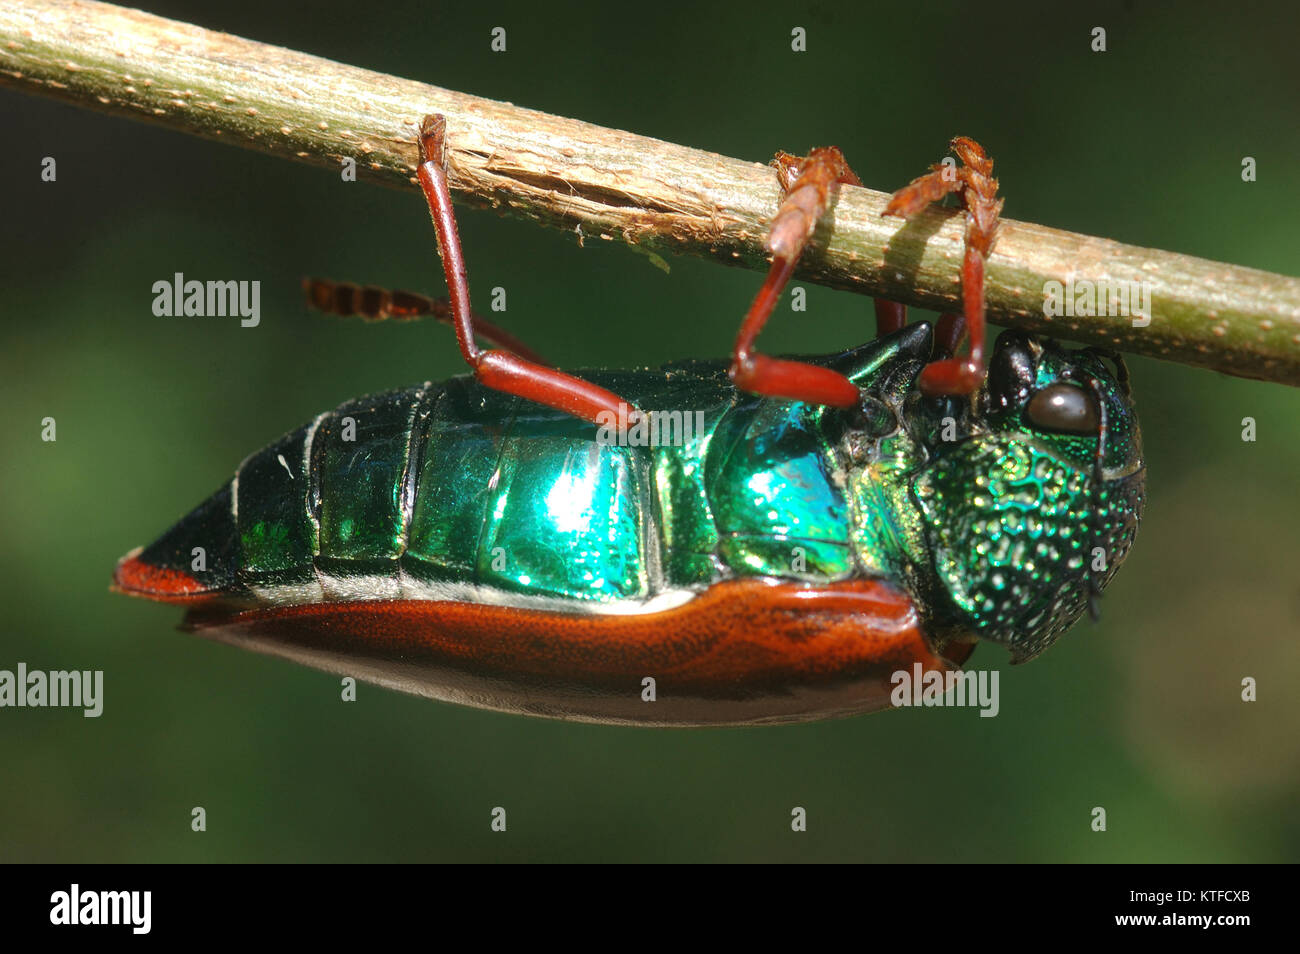 Jewel beetle of family Buprestidae, possibly Sternocera nitens or S. Brahmina,hanging from a twig. From Tamil Nadu, - Stock Image